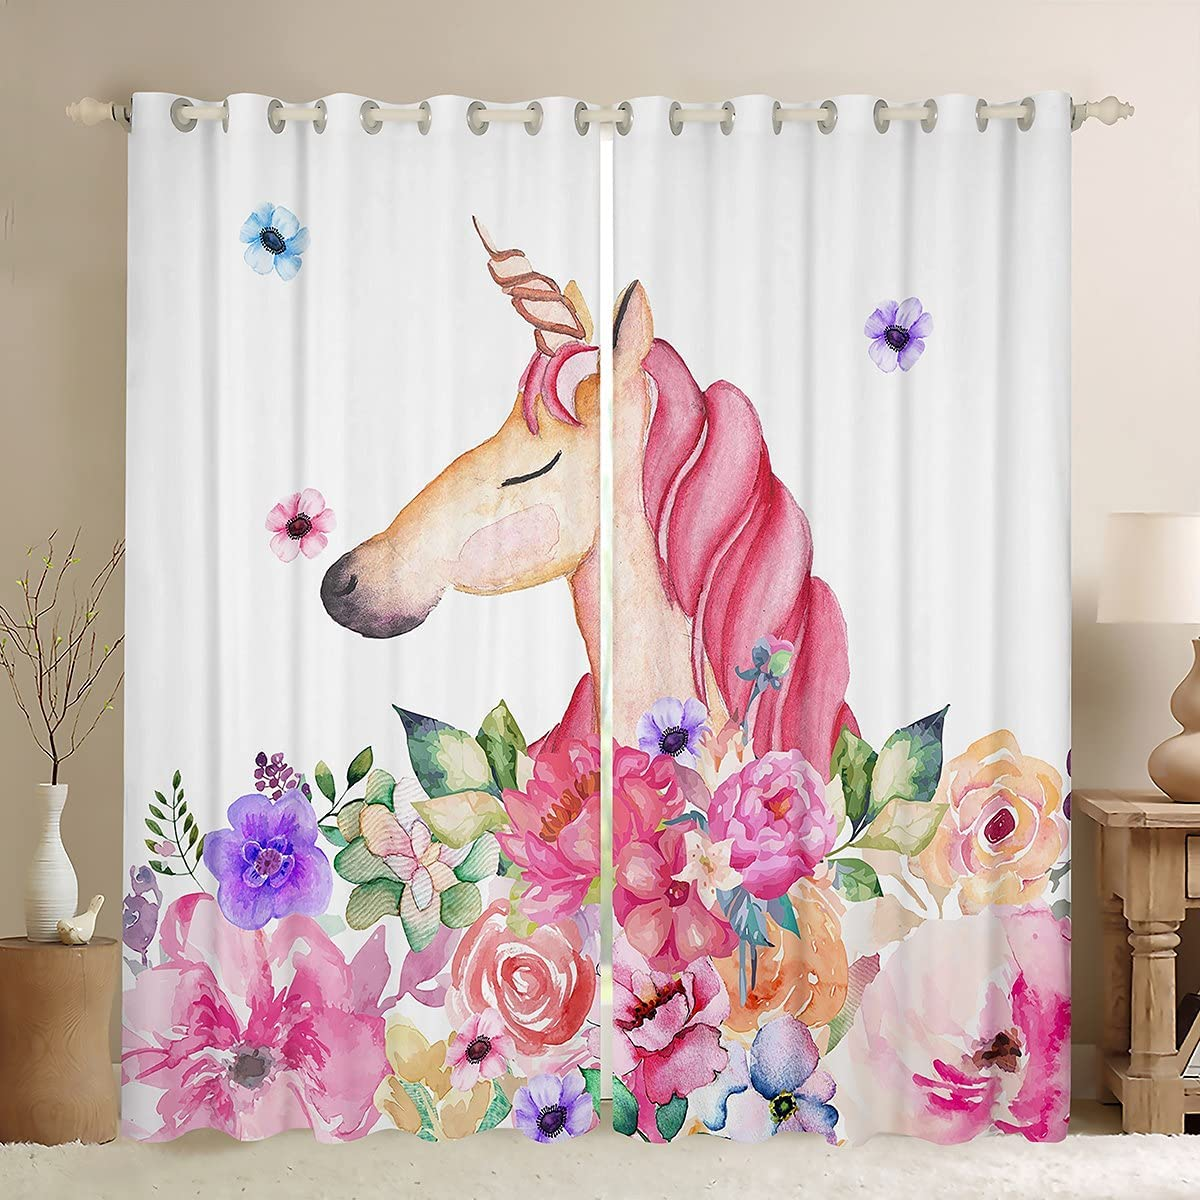 Castle Fairy Cute Unicorn Curtains safety for Kids Girly Boys online shopping Bedroom F